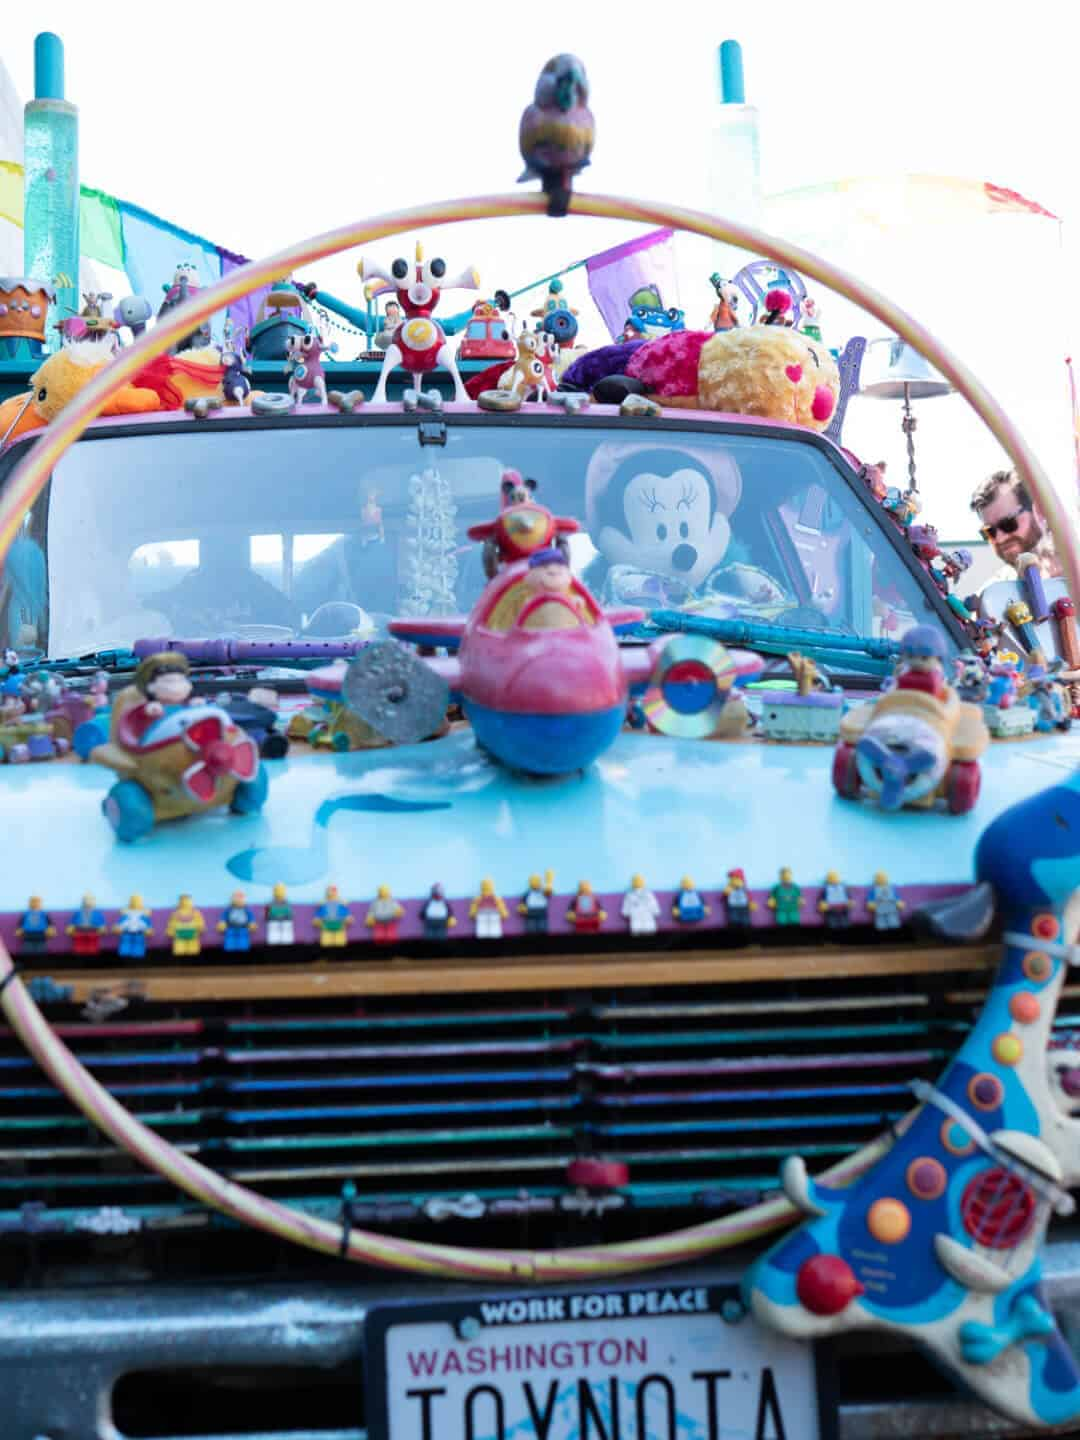 Toynota Seattle Art Cars Fremont Fair Art Cars